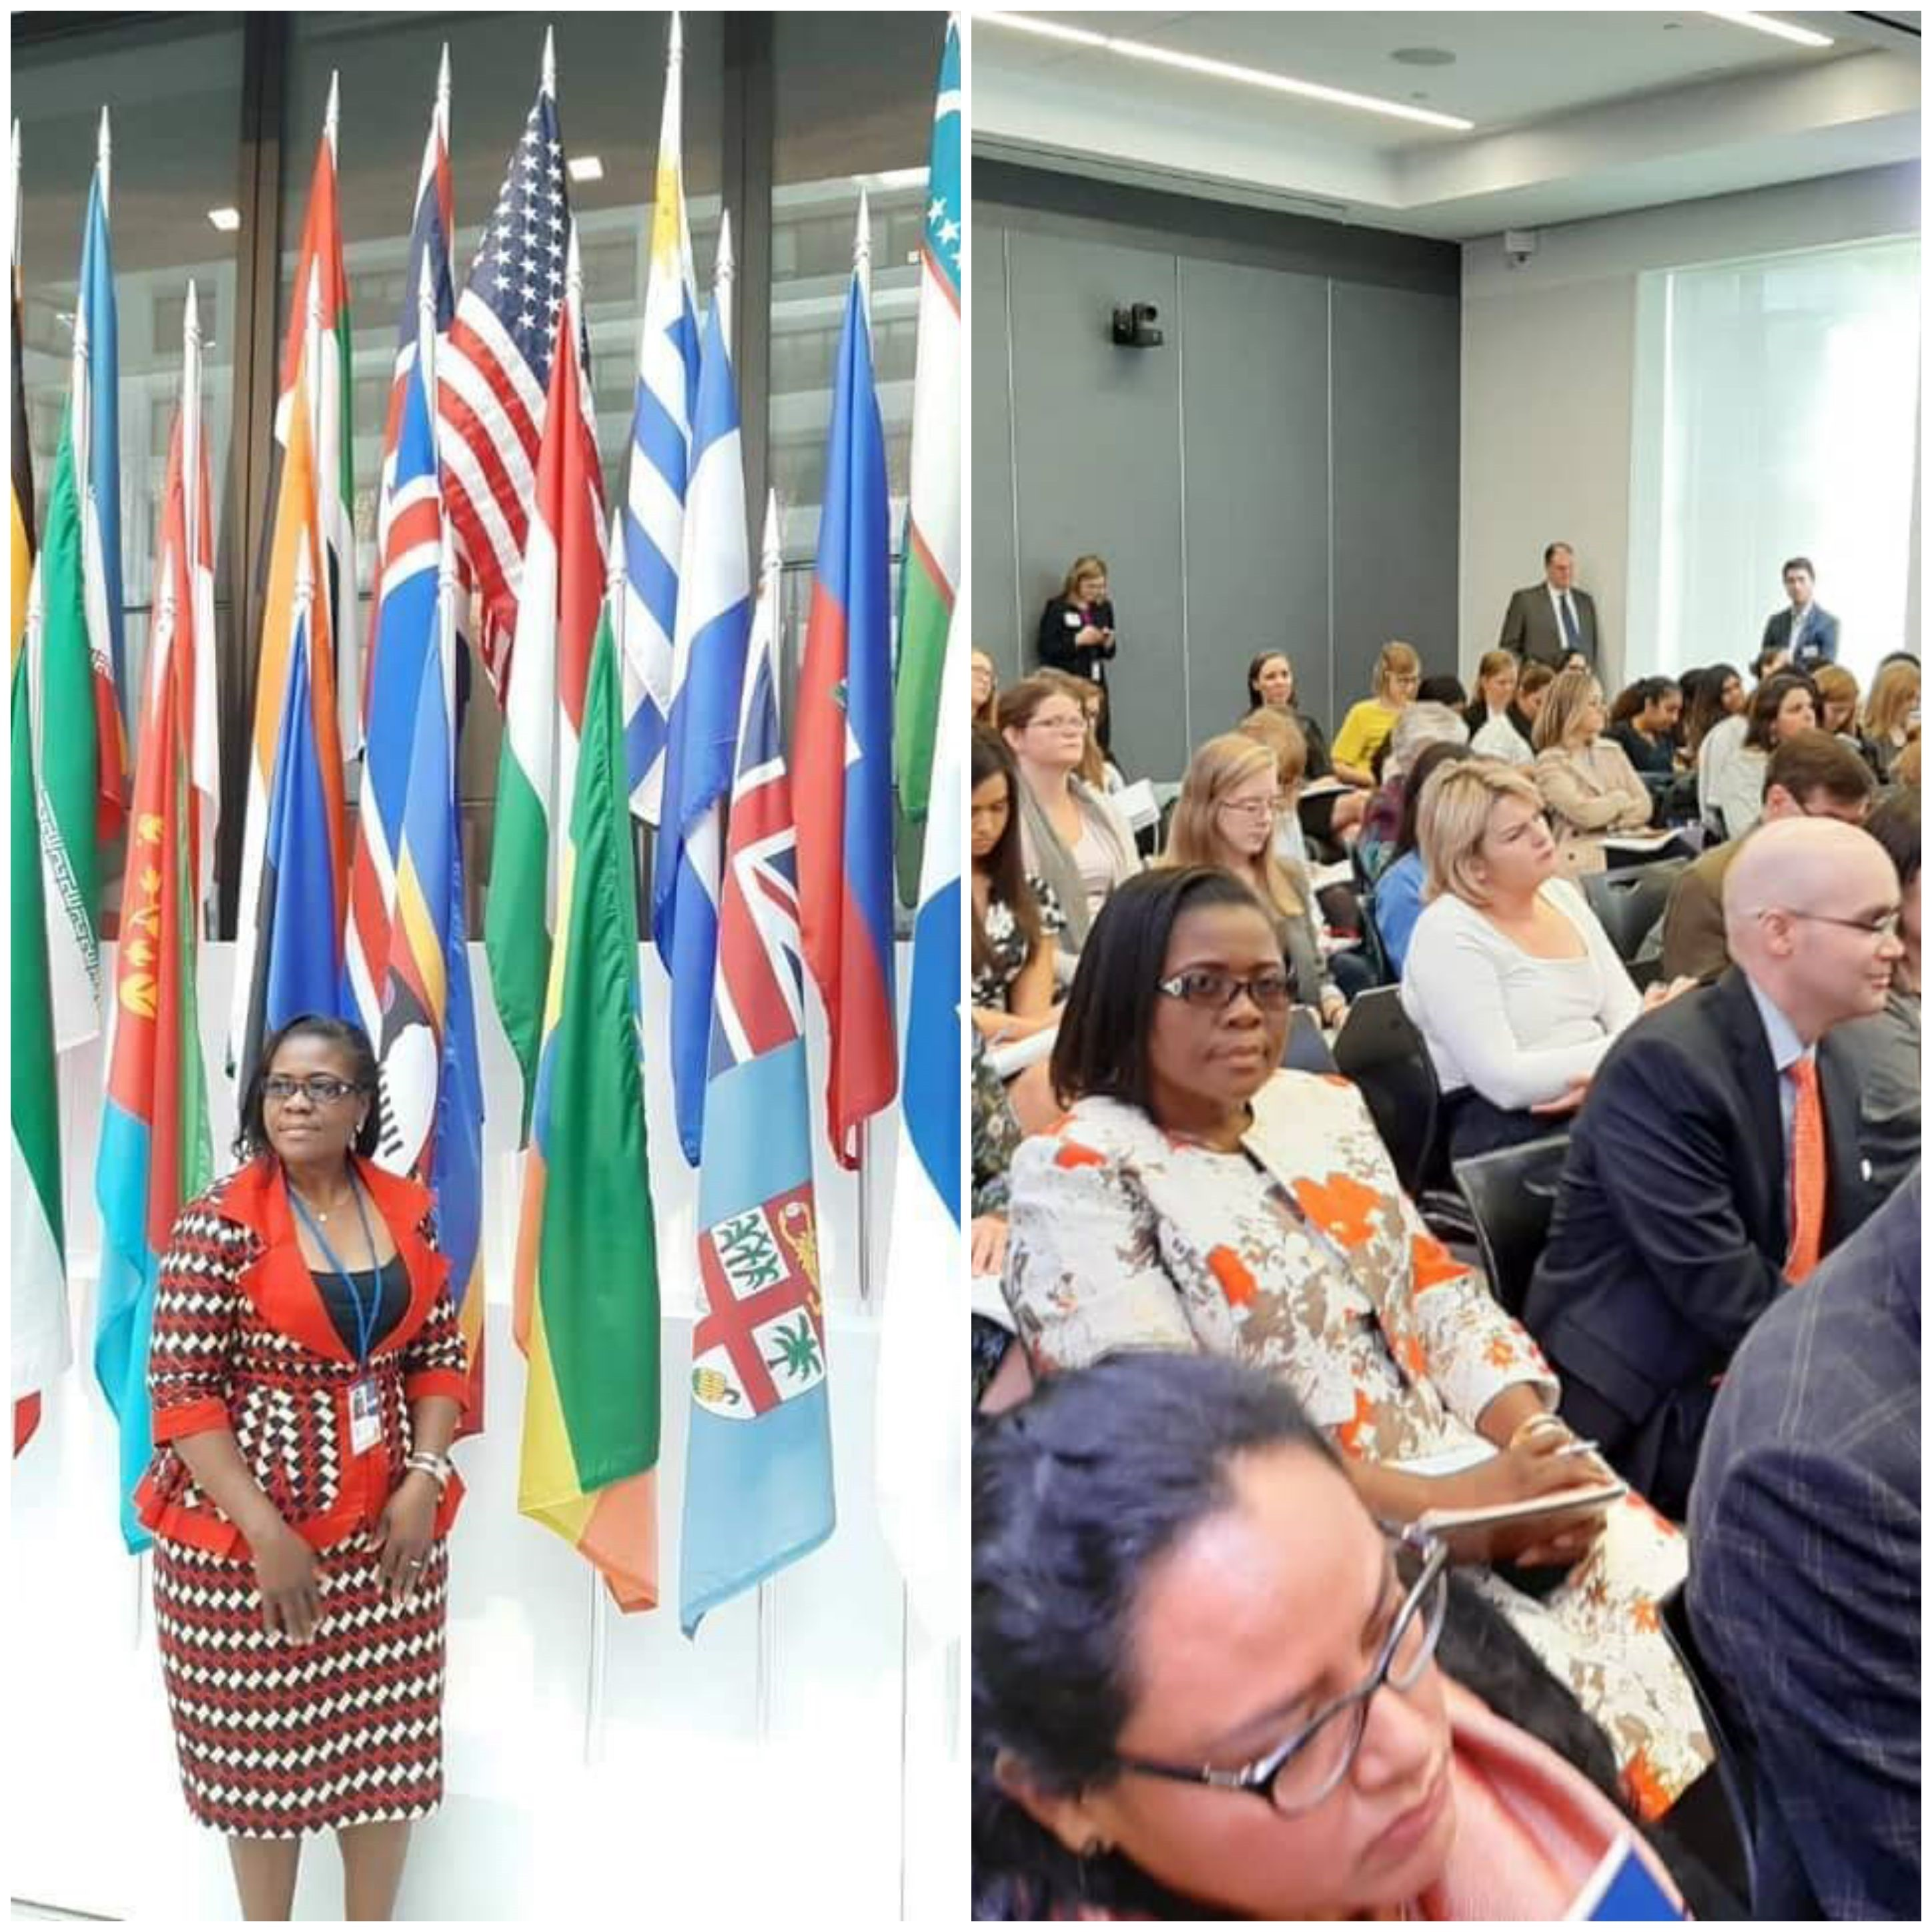 MDC Vice President Lynette Karenyi-Kore at IMF/World Bank Annual Meetings 2019